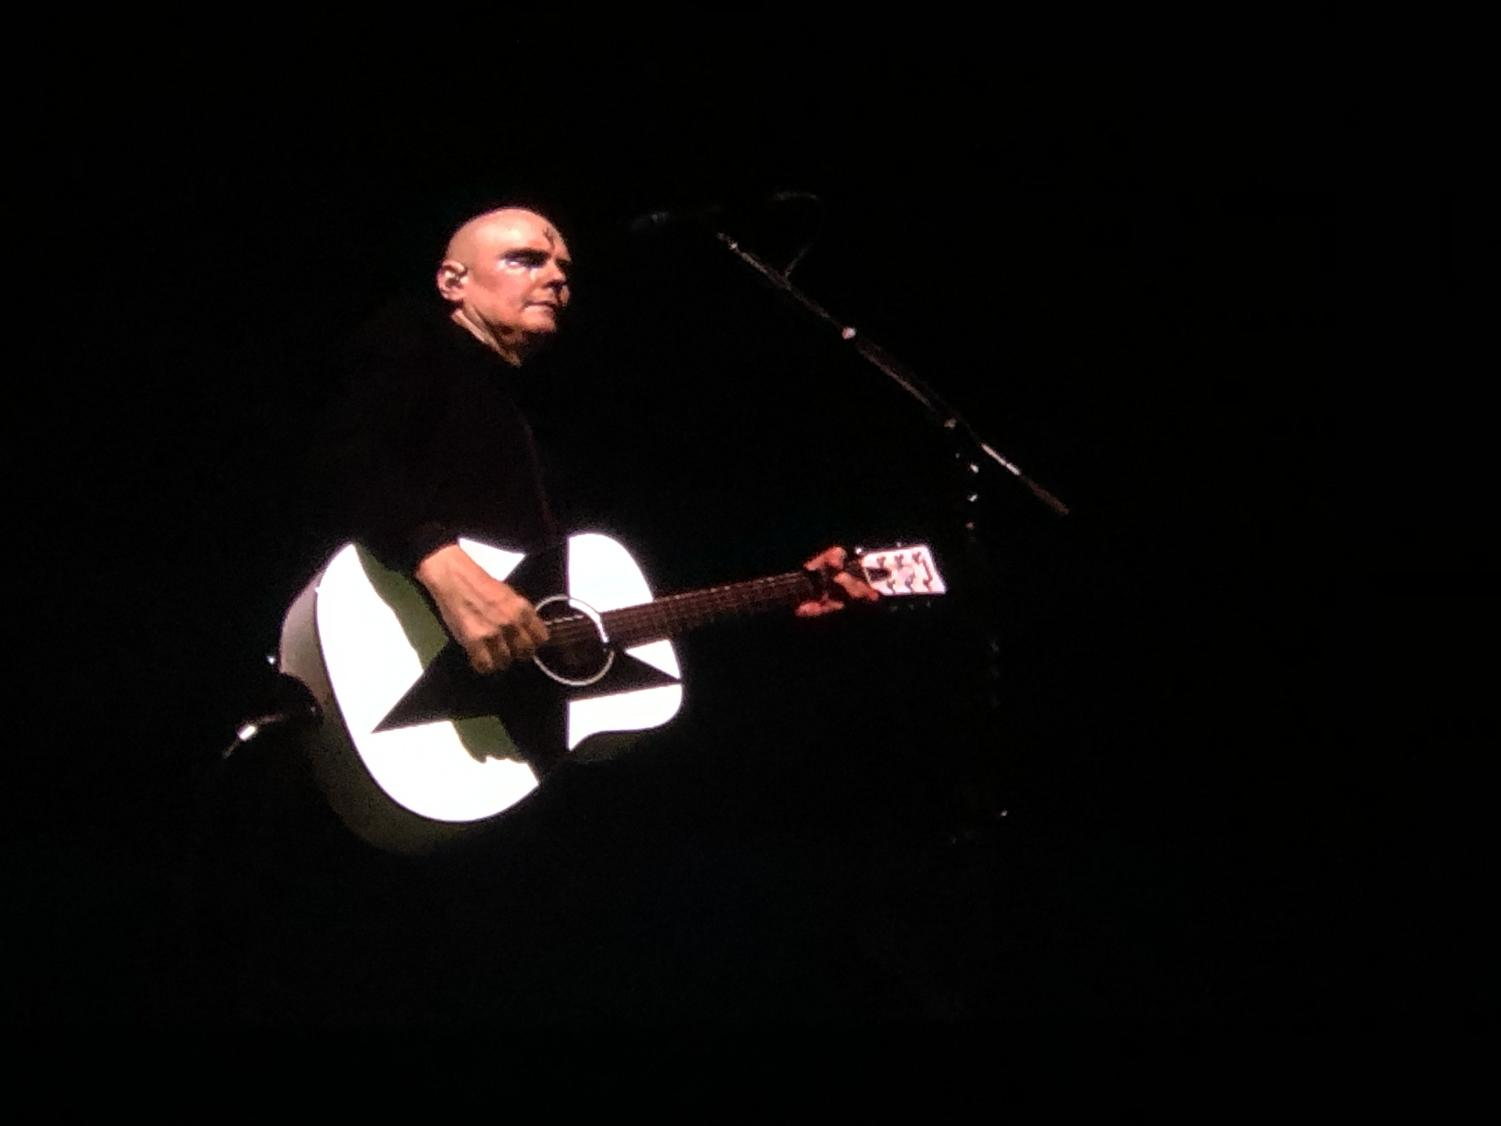 Billy+Corgan+playing+an+acoustic+guitar